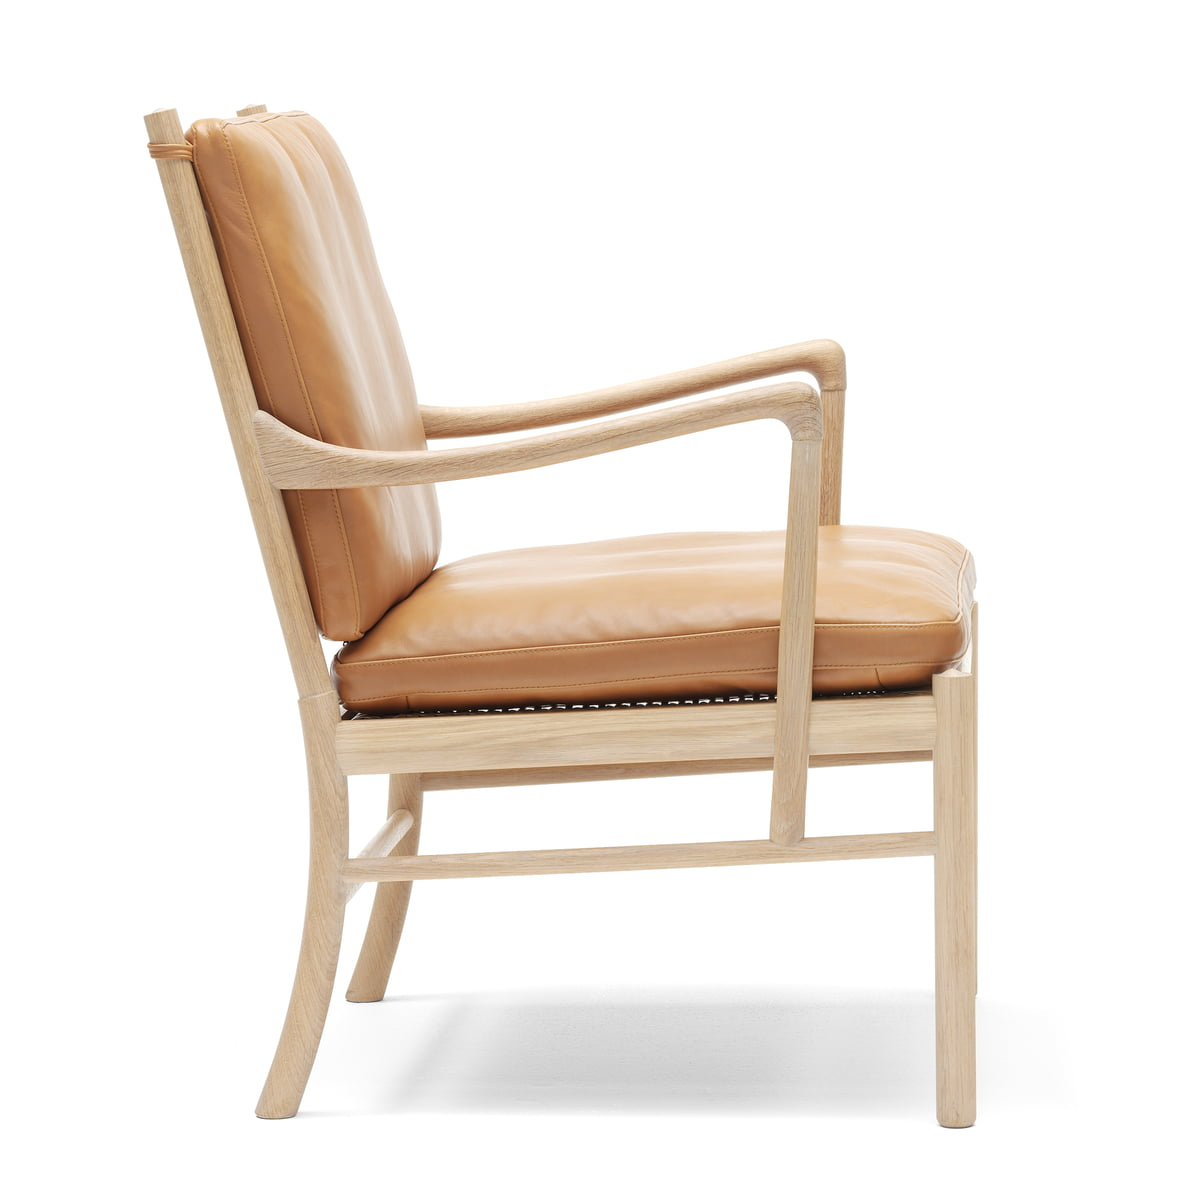 Ow149 Colonial Chair By Carl Hansen In The Shop